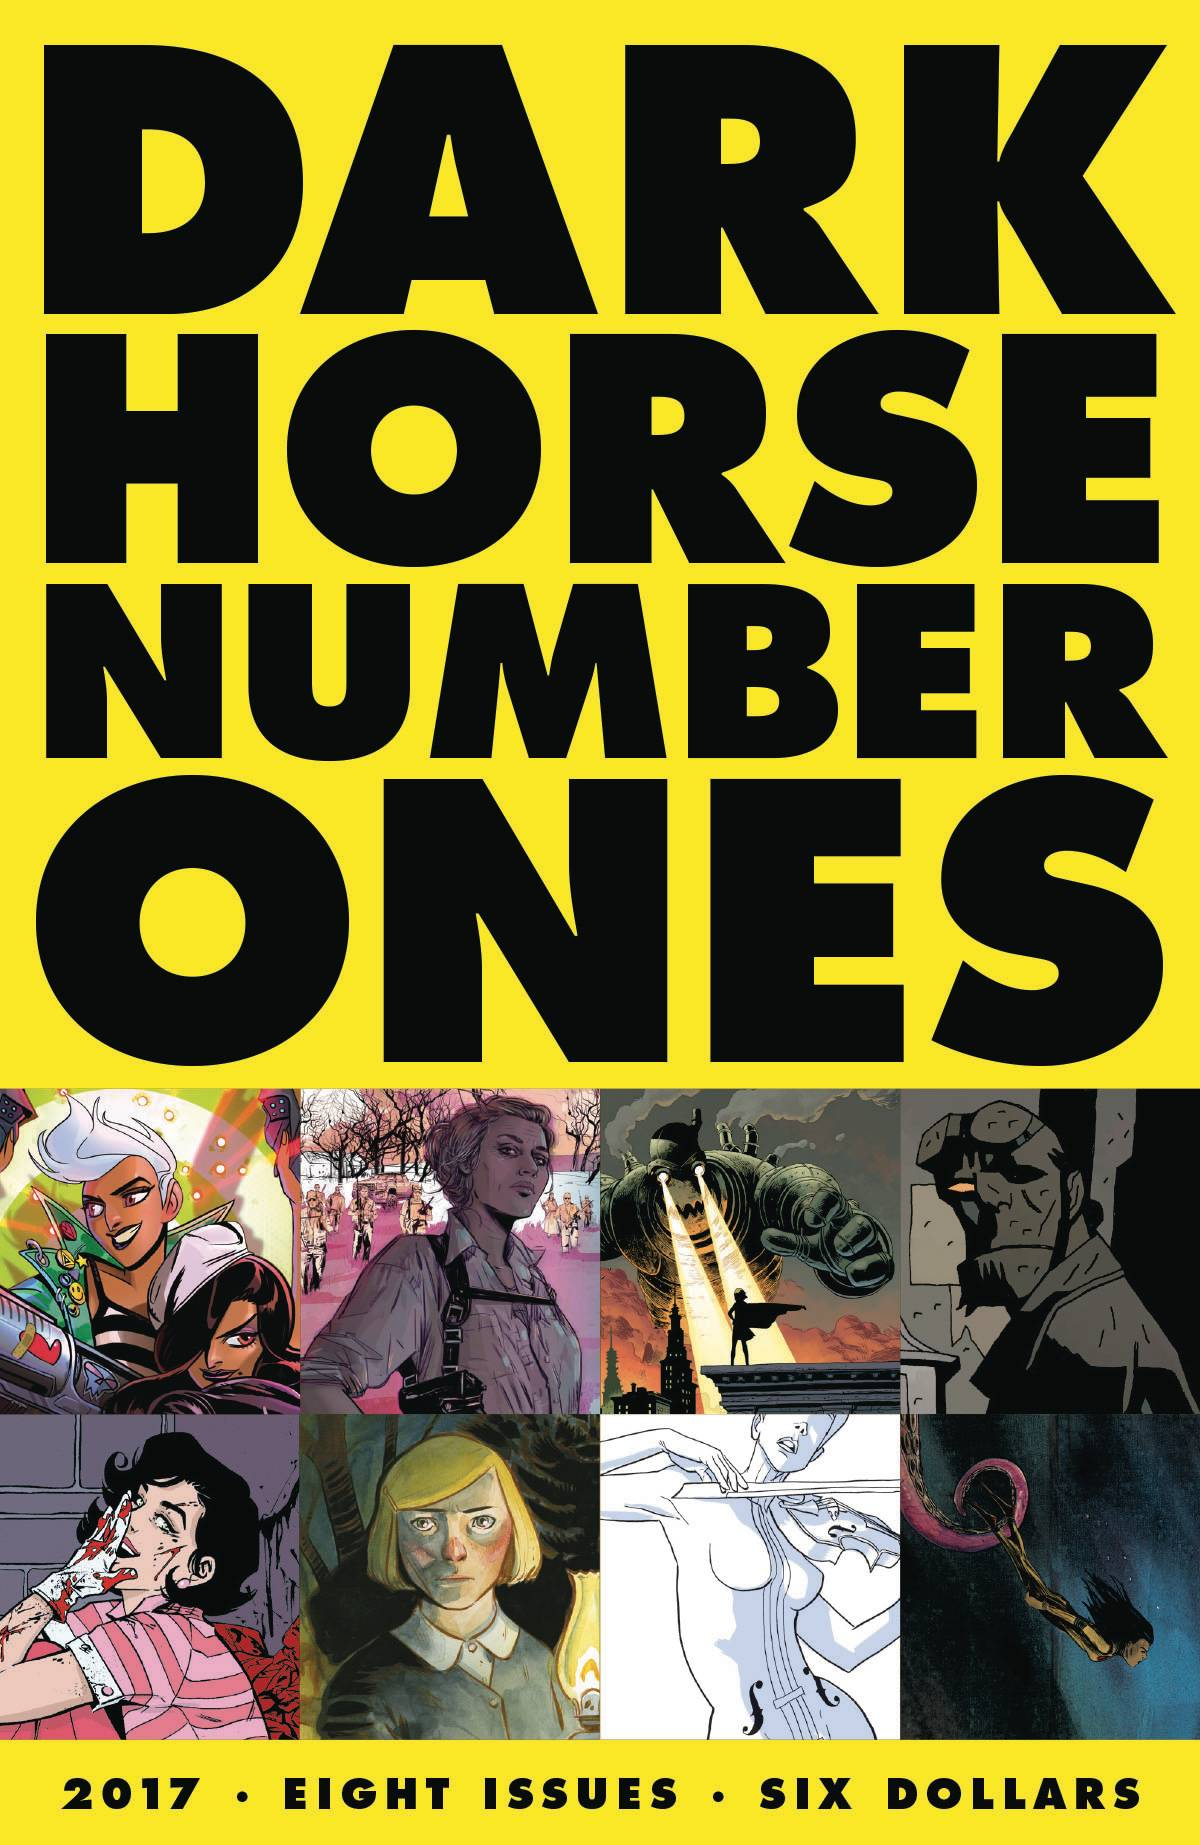 DARK HORSE NUMBER ONES TP